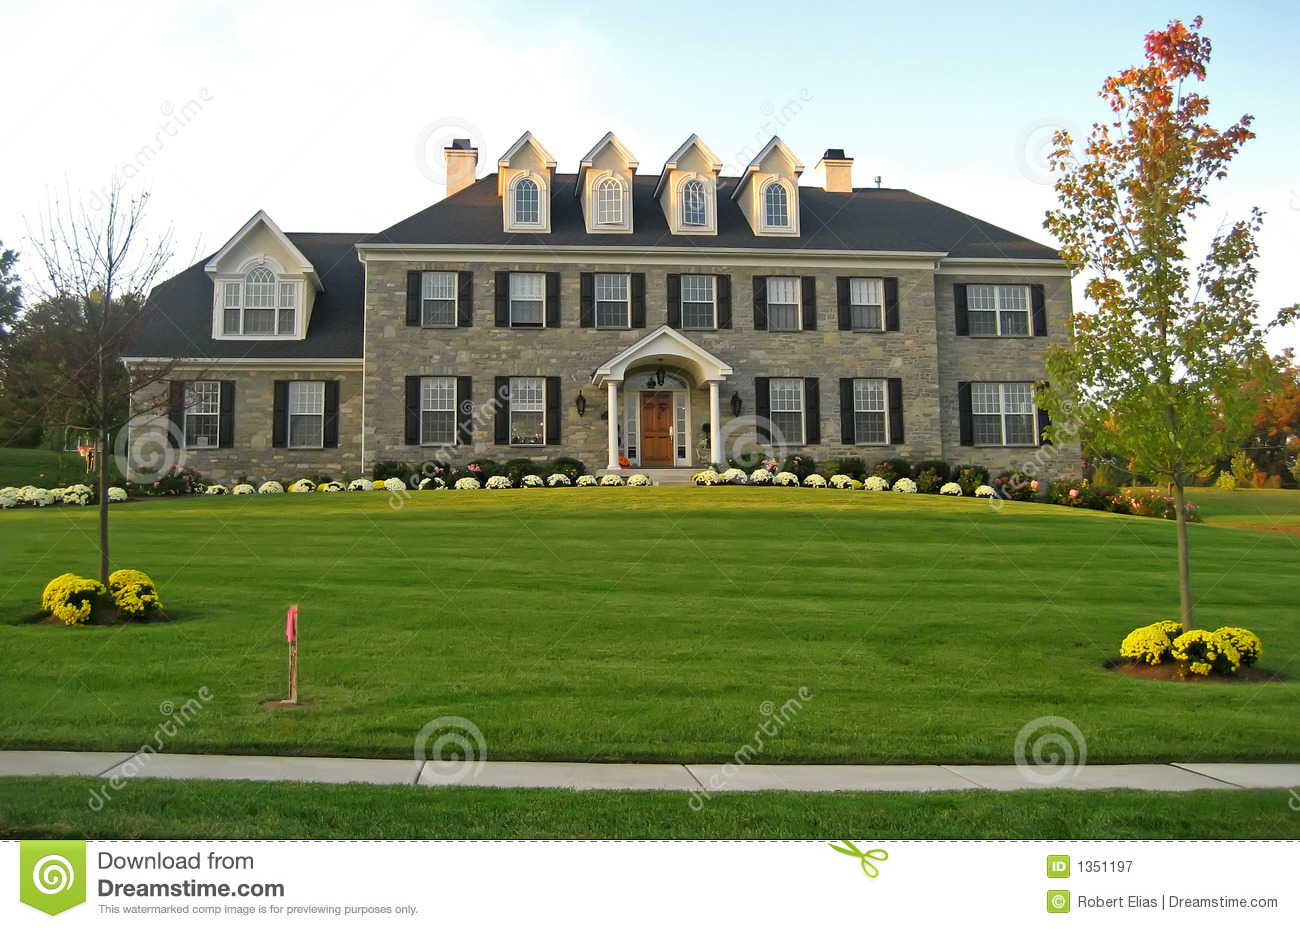 New luxury home royalty free stock photography image for Free luxury home images